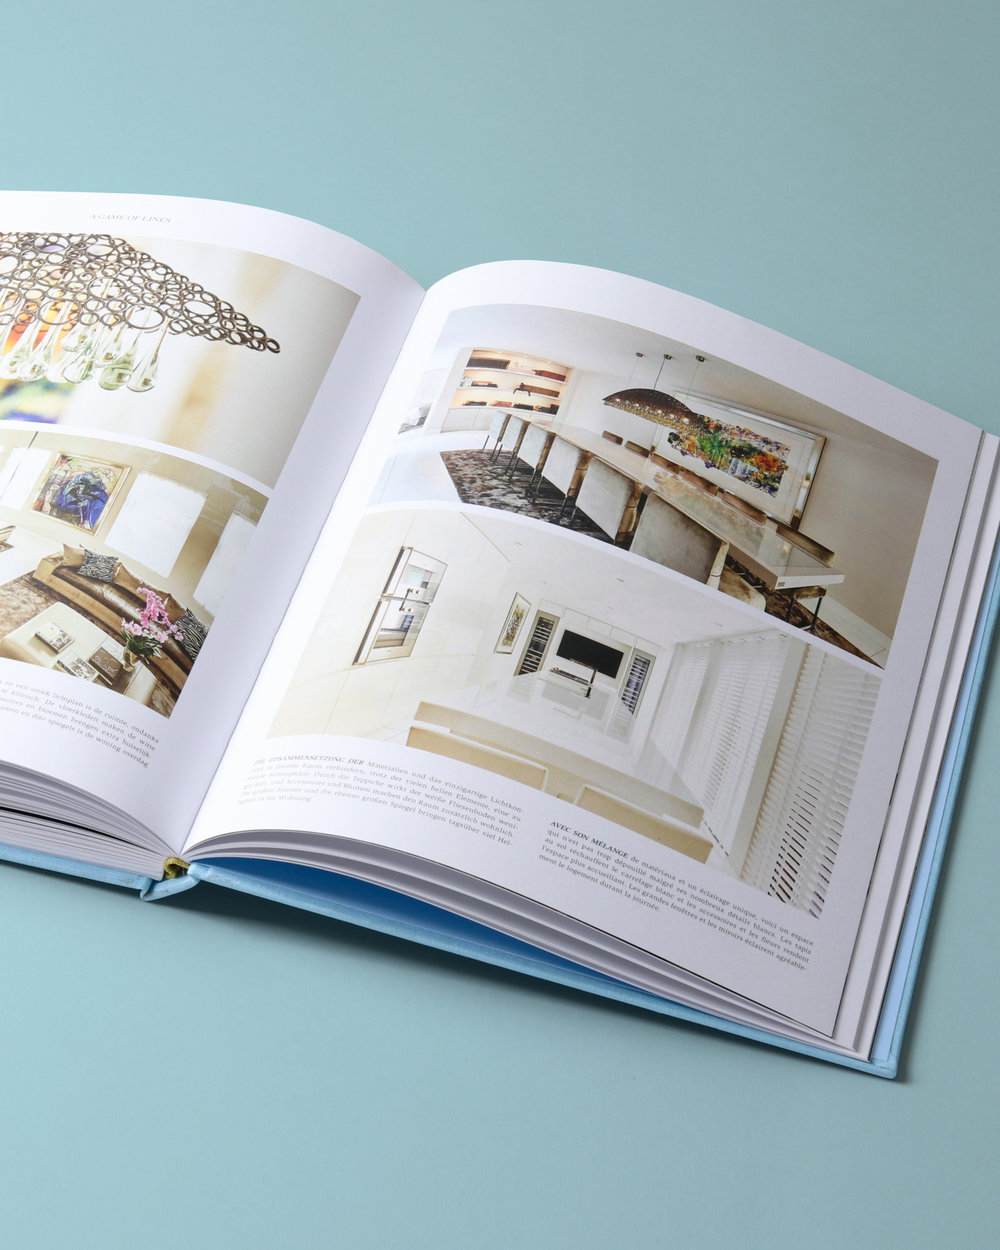 mendo-book-living-in-style-adam-06-2000x2500-c-default.jpg